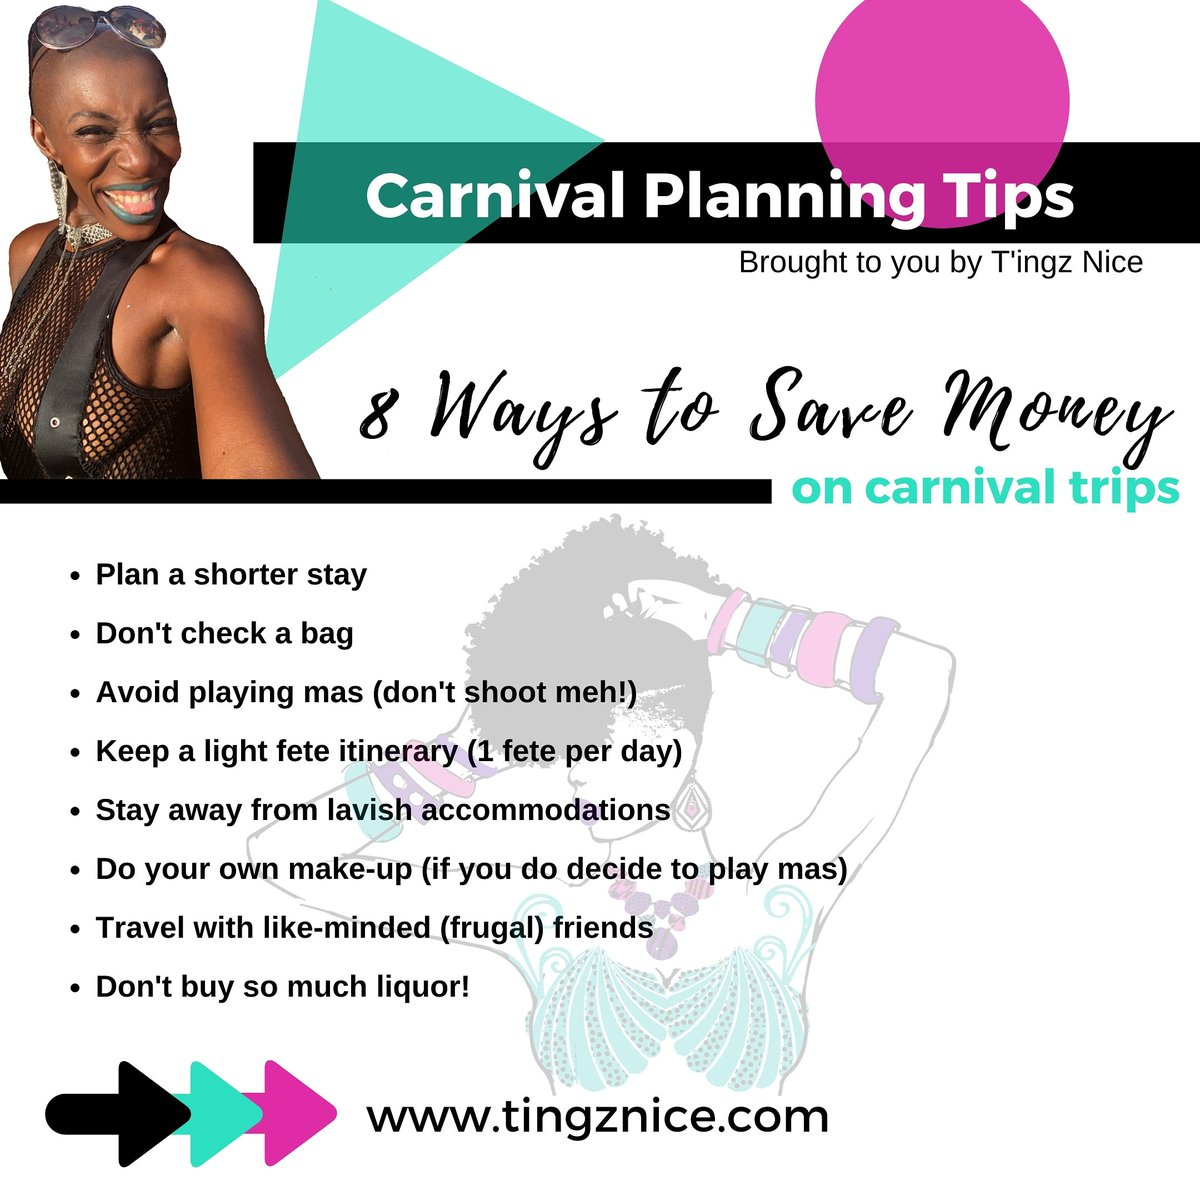 You can still have a lovely carnival trip if you take it down a notch. Be responsible in your carnival adventures...ain't no fun having the time of your life while traveling, only to get back to reality and realize you're unable to make ends meet. ⠀ #TingzNice #CarnivalTwitter<br>http://pic.twitter.com/4VfVngu8Ed